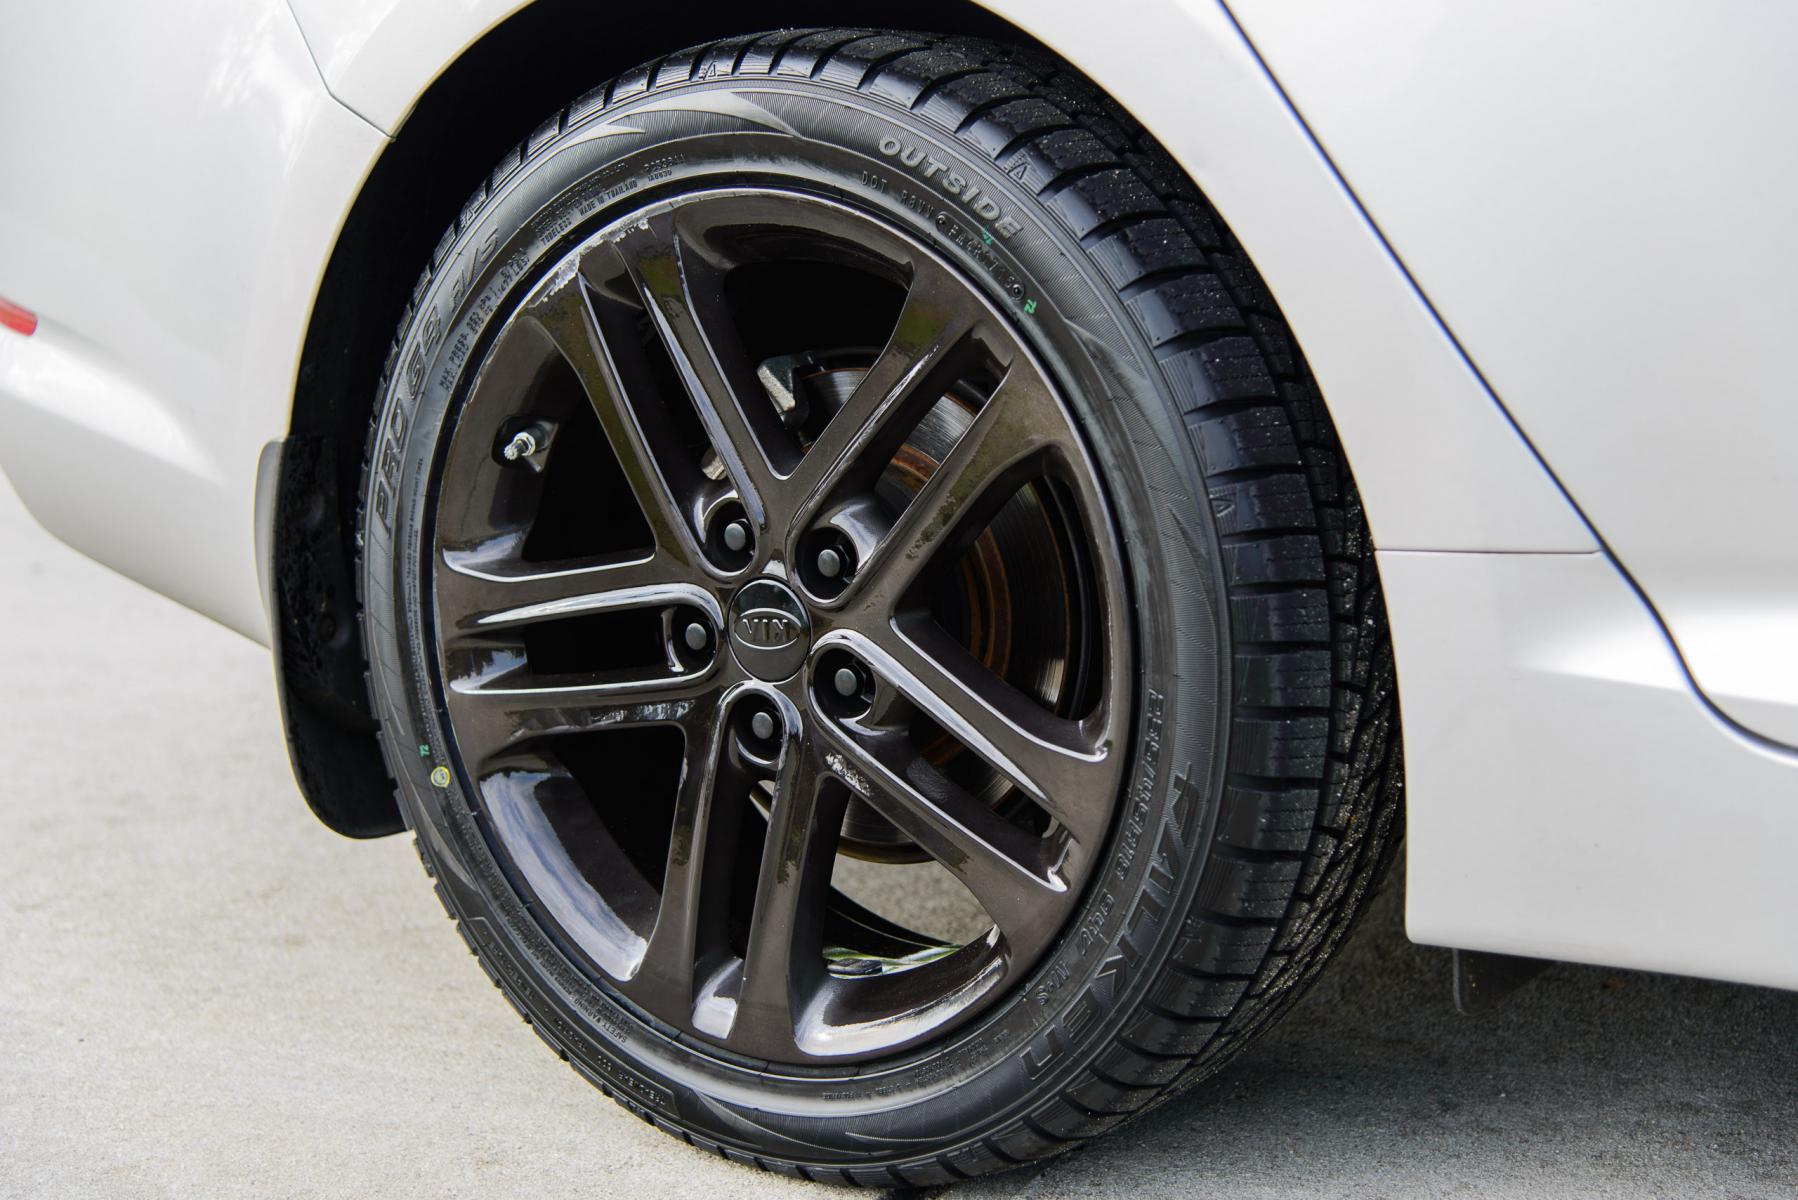 List of cars that fit 235 45 R18 tire size What models fit & how